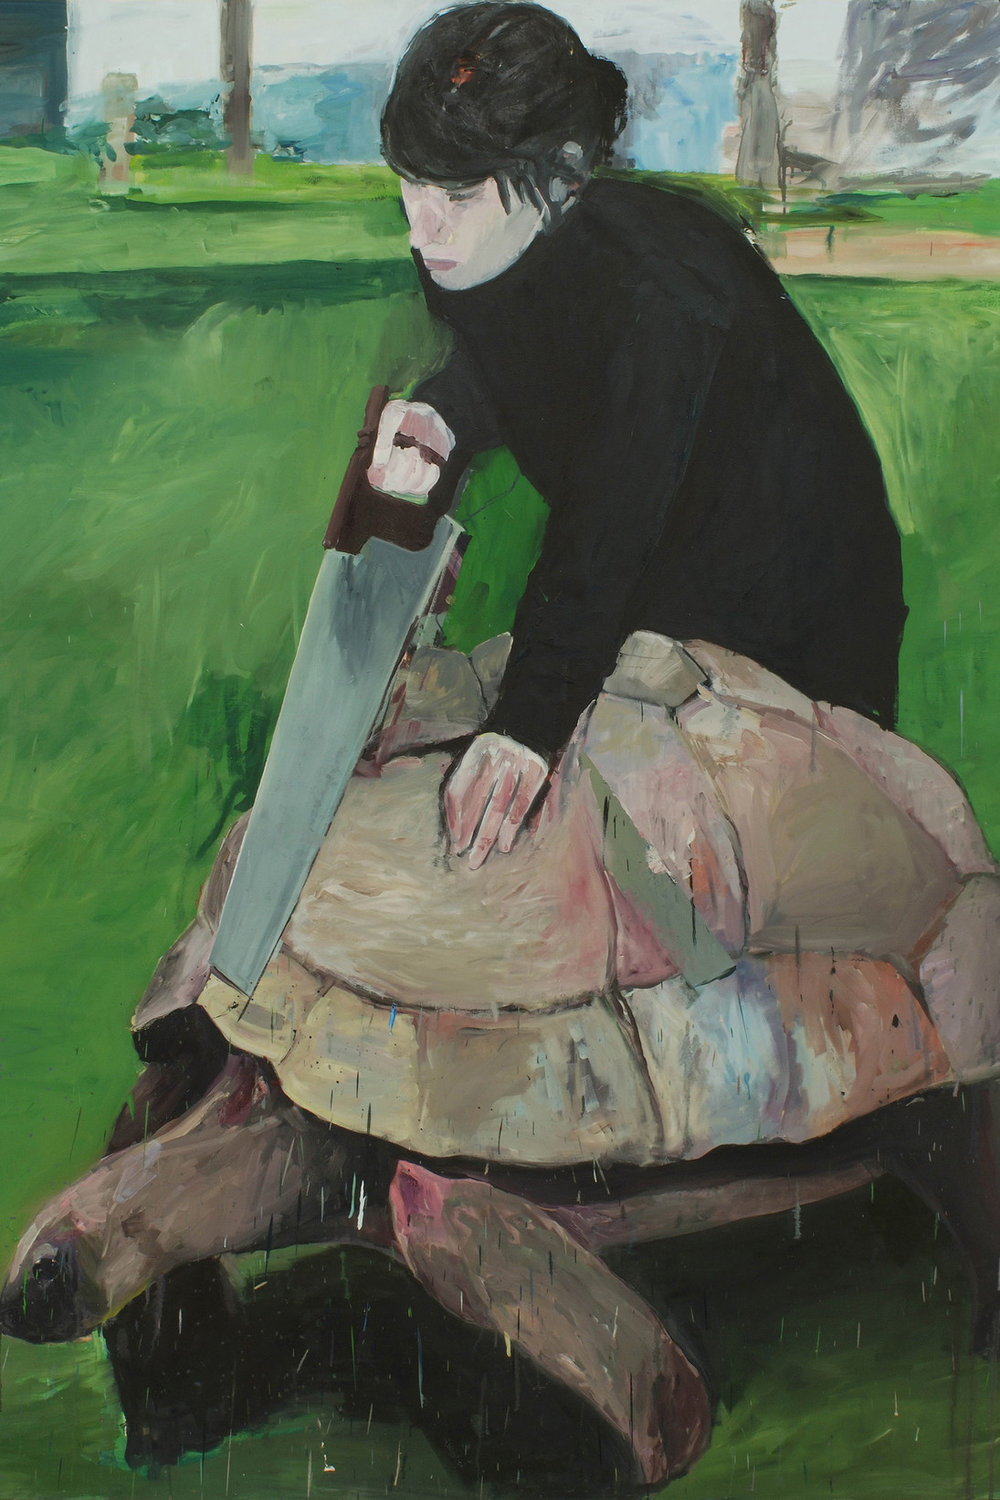 Eduardo Berliner,  Handsaw , 2009, courtesy of the artist.